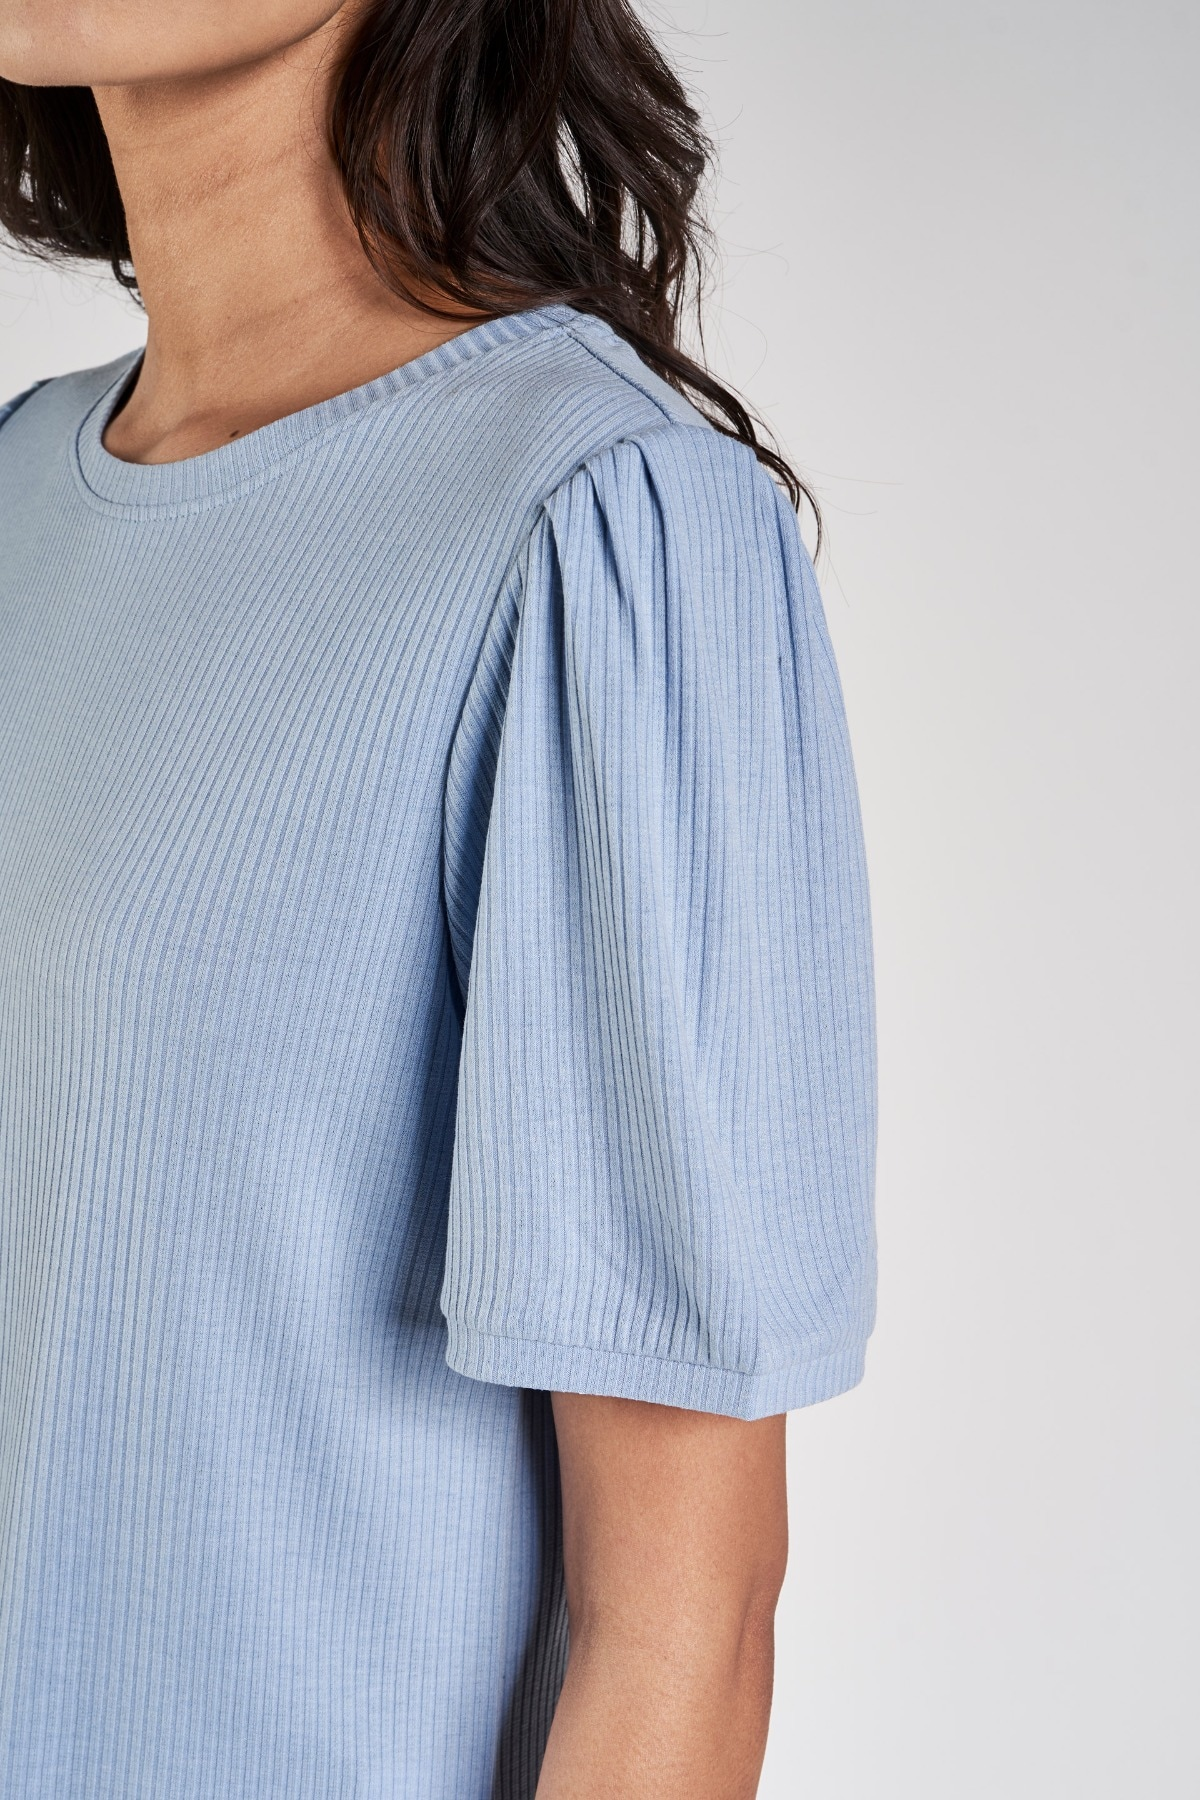 AND | Powder Blue Solid A-Line Top